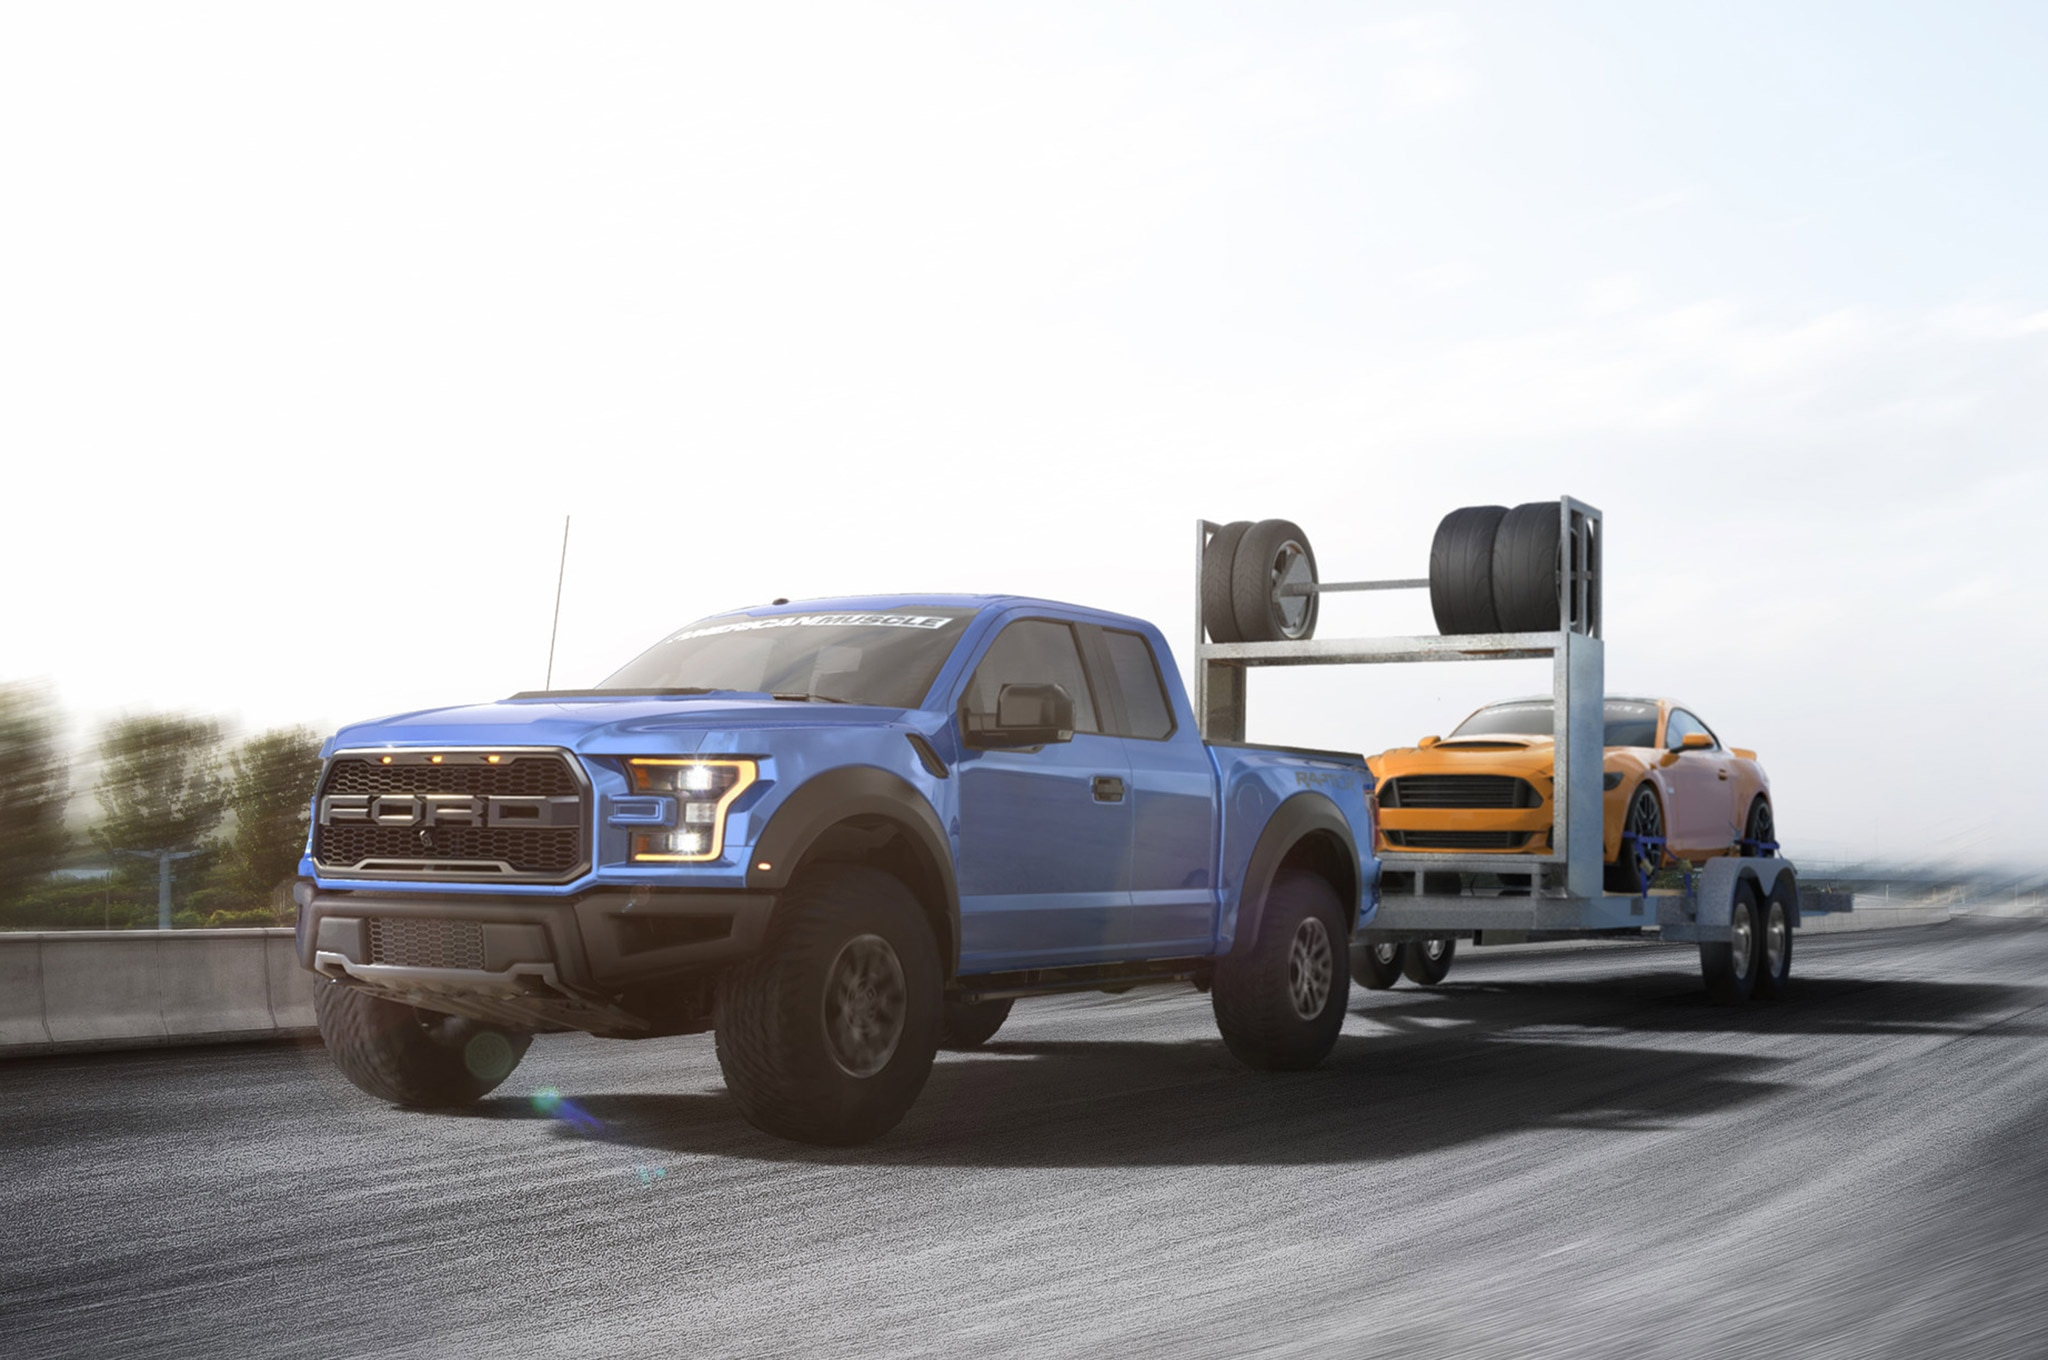 03 2017 Ford Raptor Towing 2015 Ford Mustang Photo 174896462